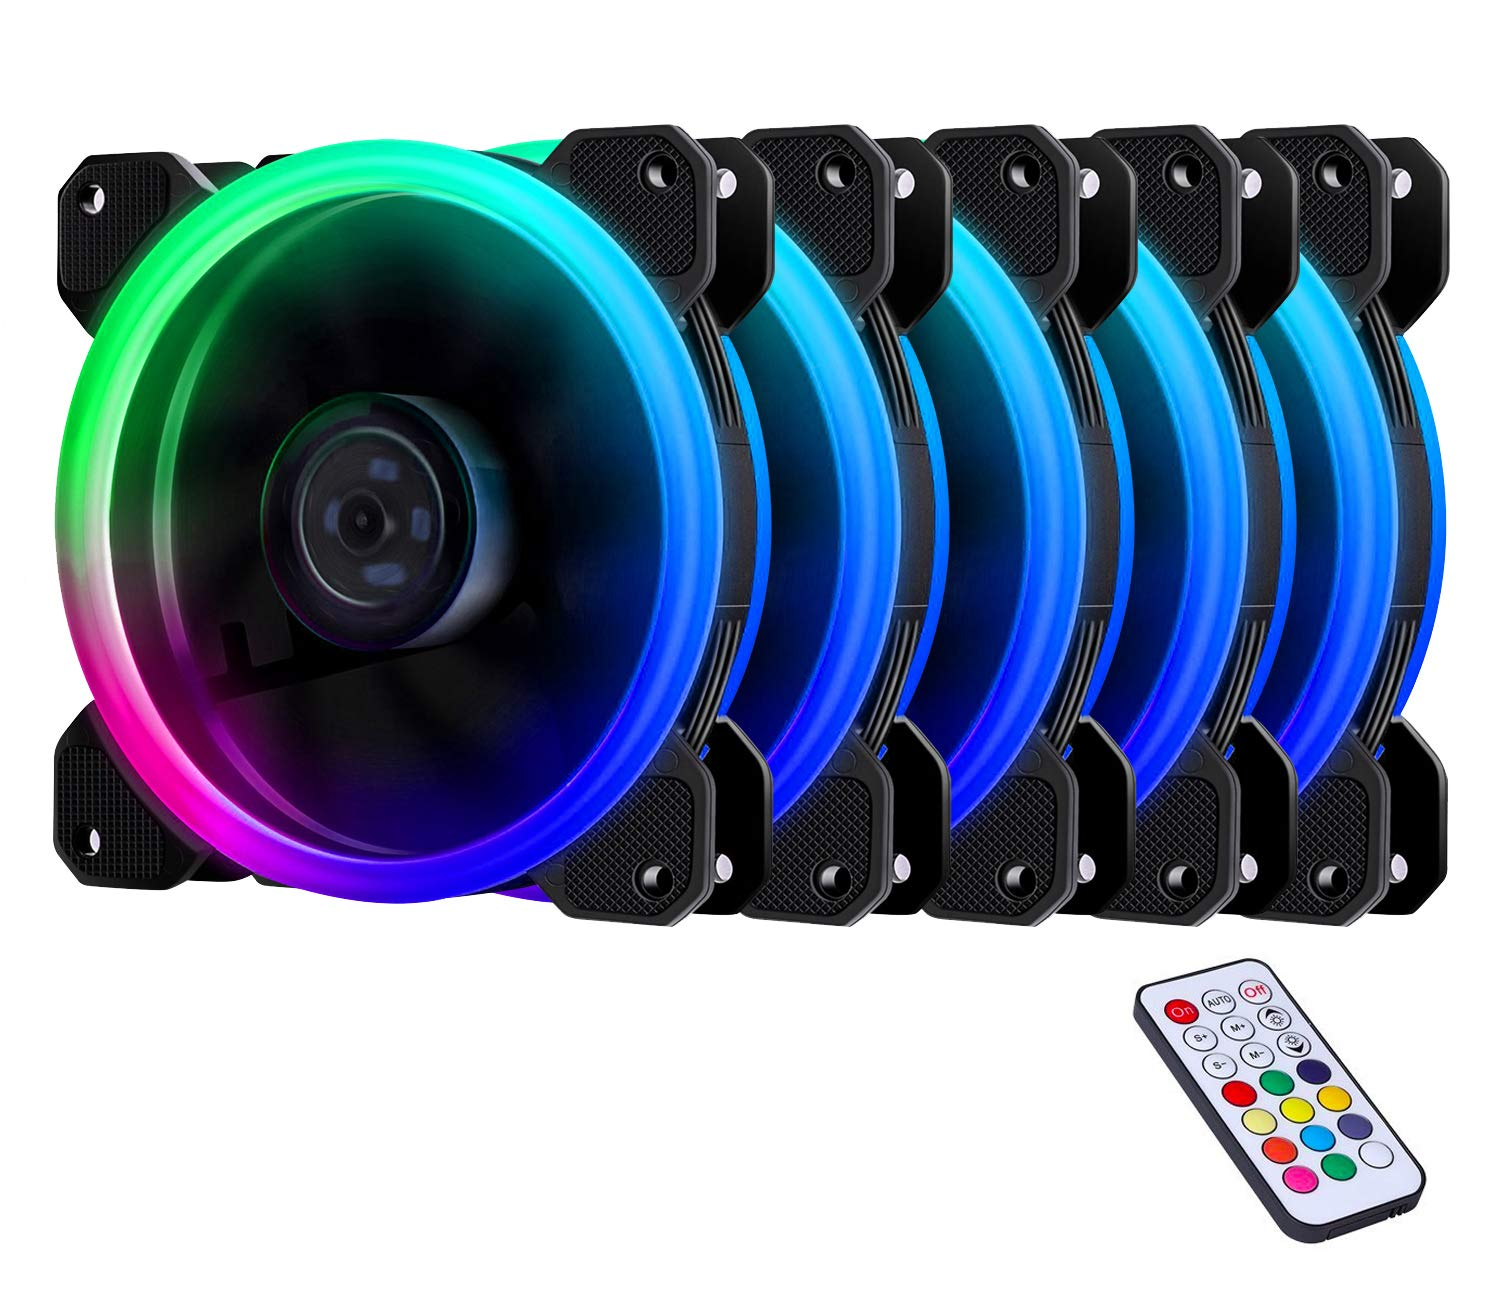 EZDIY-FAB 5-Pack Wireless RGB LED 120mm Case Fan,Quiet Edition High Airflow Adjustable Color LED Case Fan for PC Cases, CPU Coolers,Radiators System